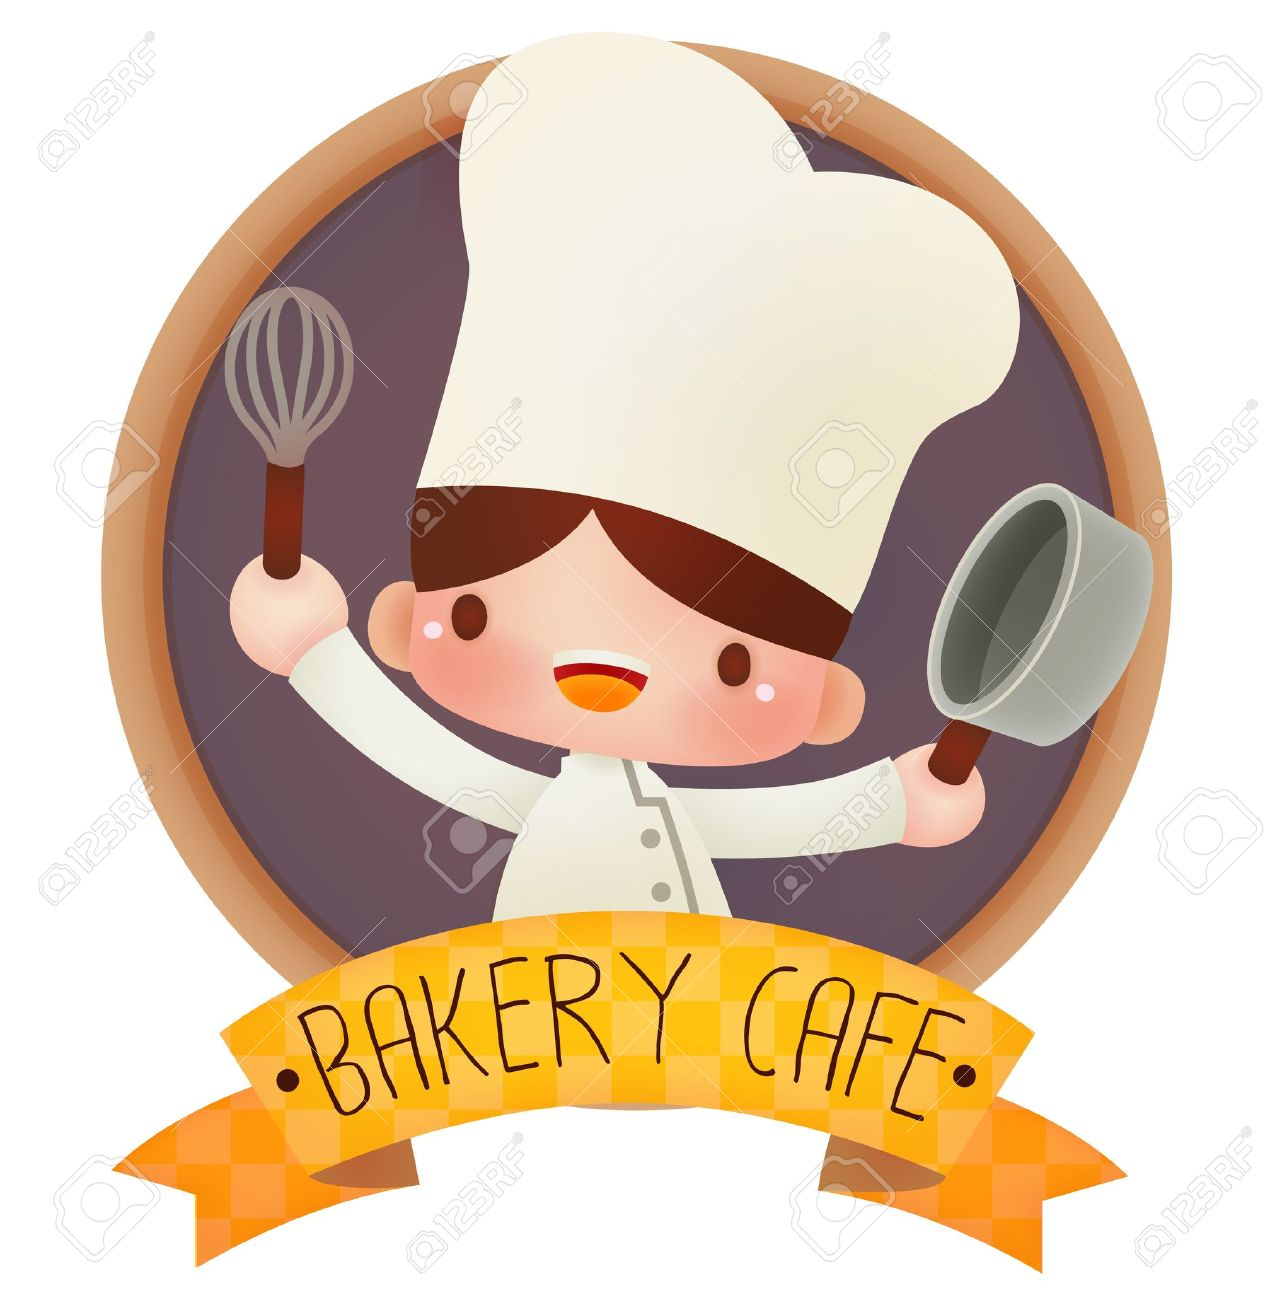 Cute chef clipart picture freeuse download 6,898 Cute Chef Stock Vector Illustration And Royalty Free Cute ... picture freeuse download